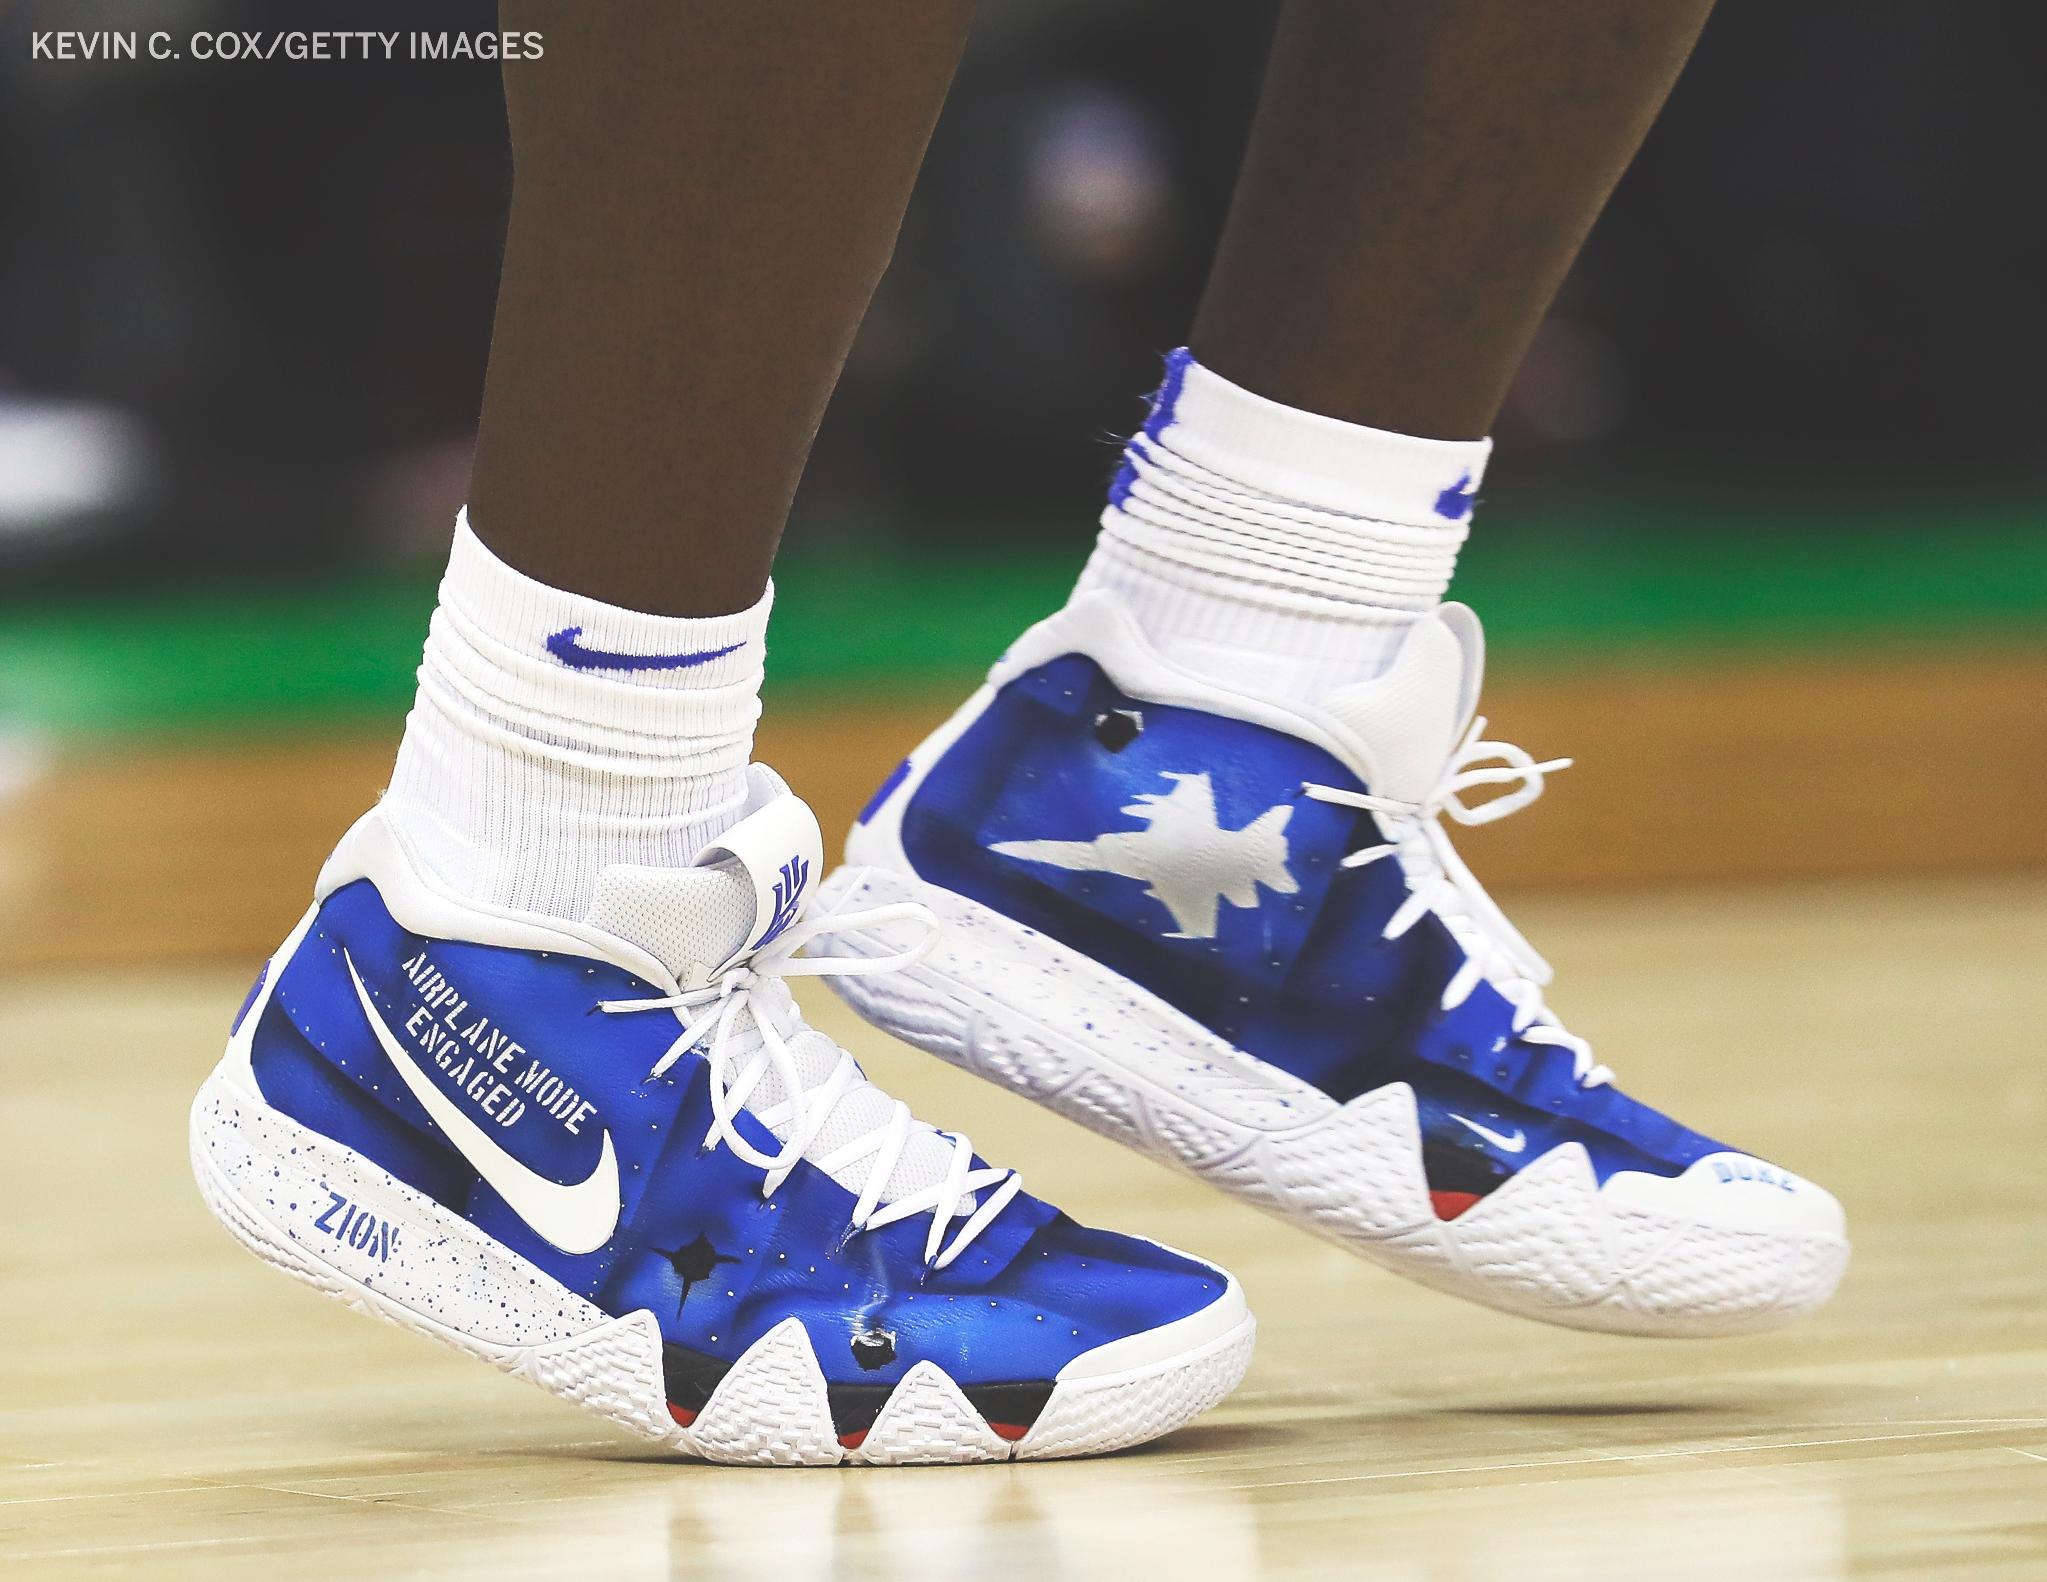 Zion with the custom Kyrie 4s ✈️  The right shoe with 'airplane mode engaged' and the left with 'takeoff imminent.' https://t.co/dxNgBczoMk